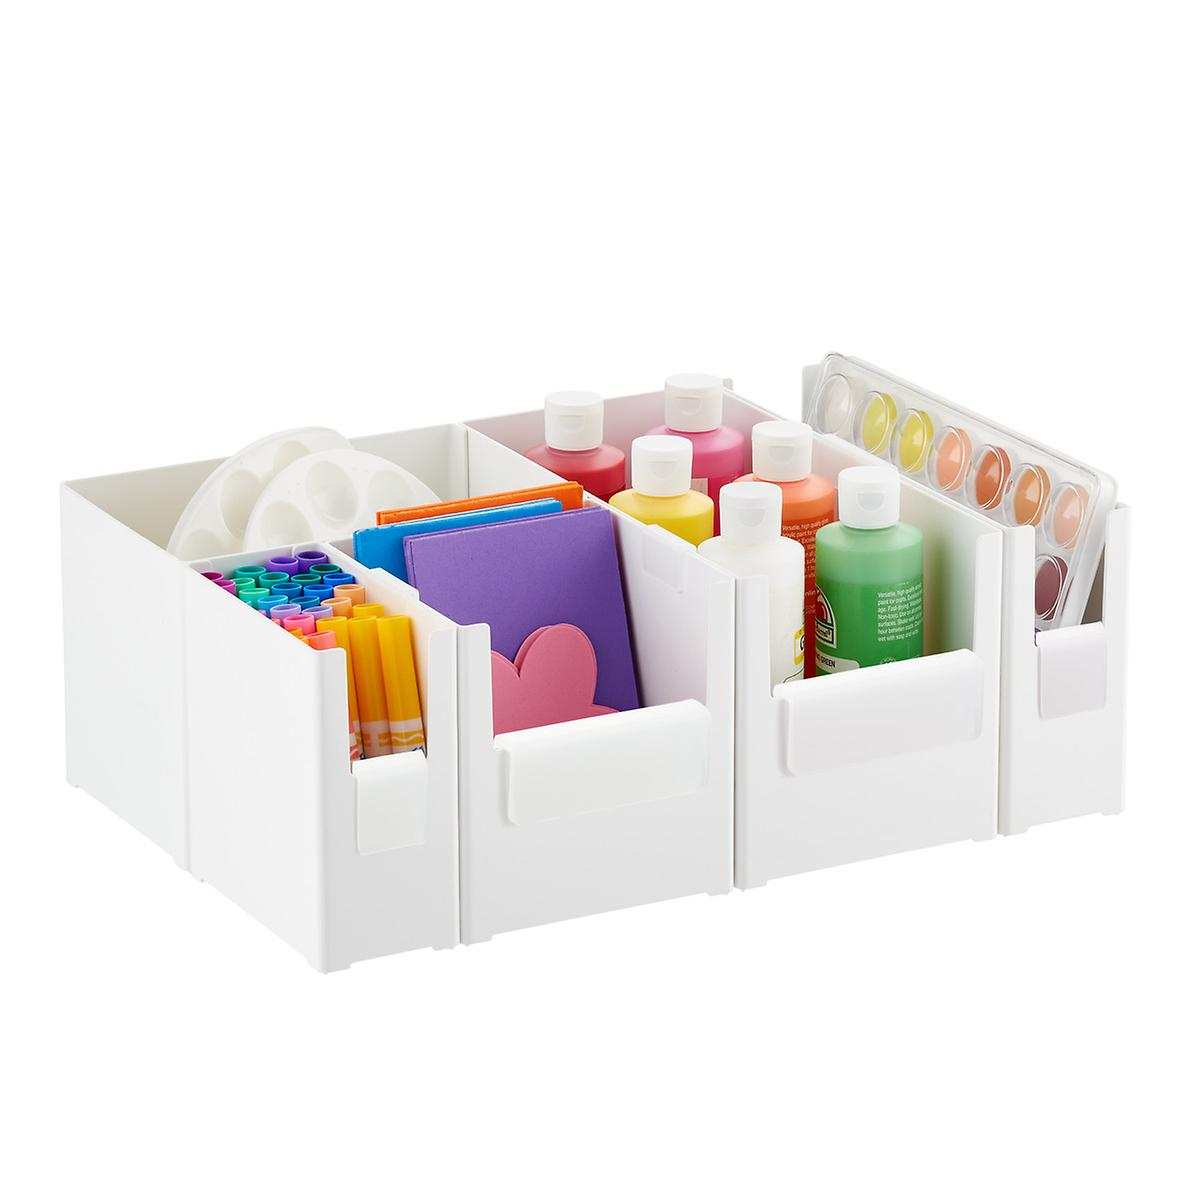 Like It Modular Drawer Organizers The Container Store